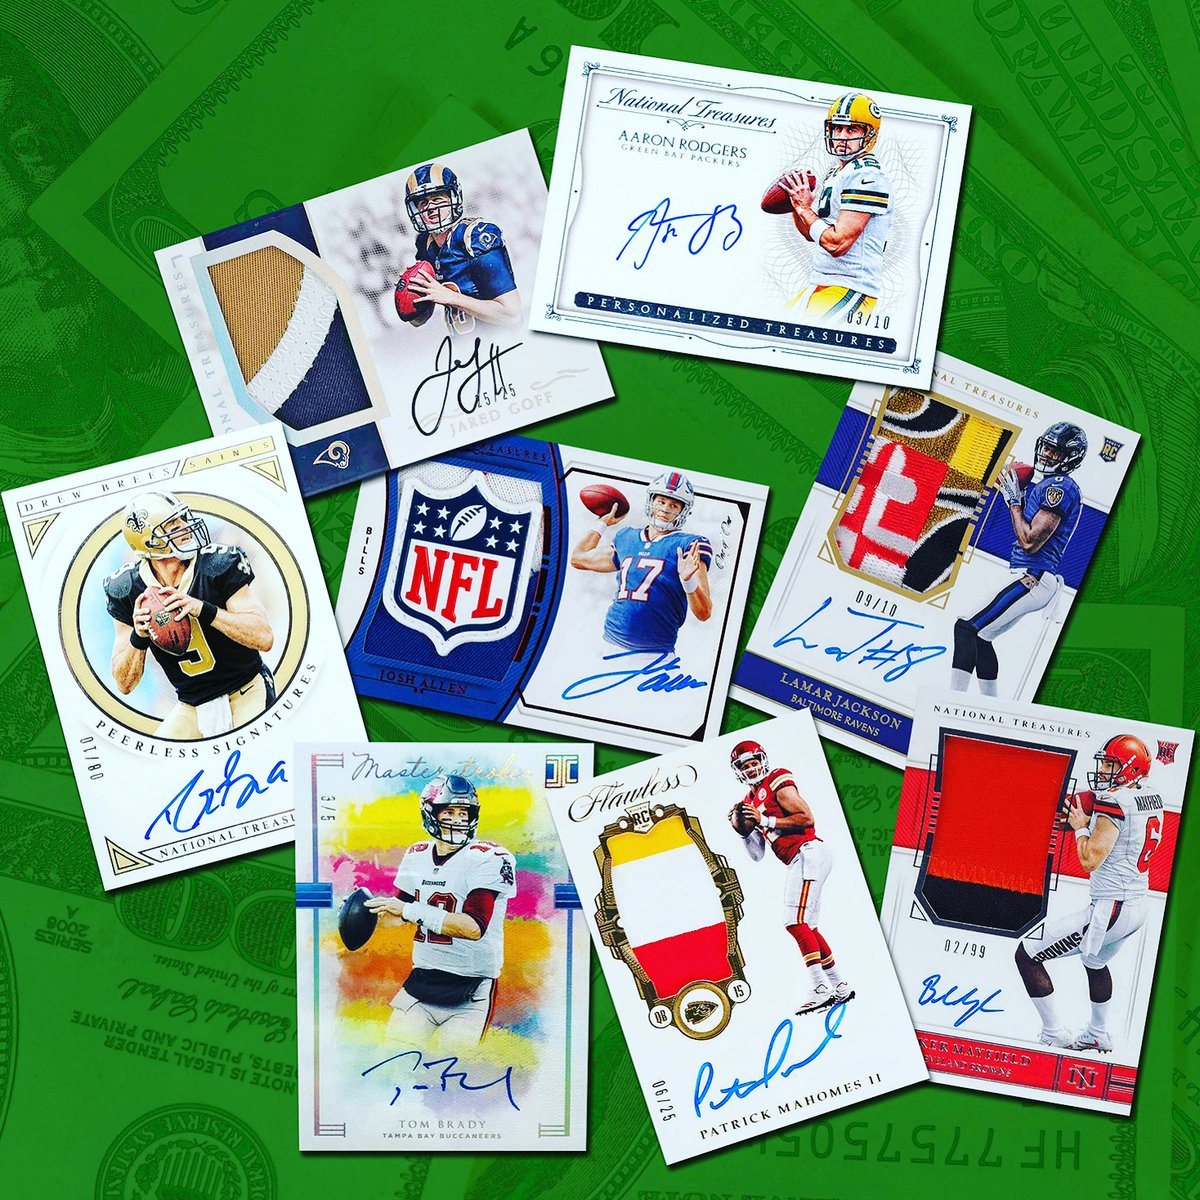 Big-name QBs with big-bucks @PaniniAmerica cards headline this weekend's Divisional Round of the #NFLPlayoffs. Who's your money on?  @JaredGoff16 or @AaronRodgers12? @Lj_era8 or @JoshAllenQB? @bakermayfield or @PatrickMahomes? @TomBrady or @drewbrees?  #WhoDoYouCollect | #NFL